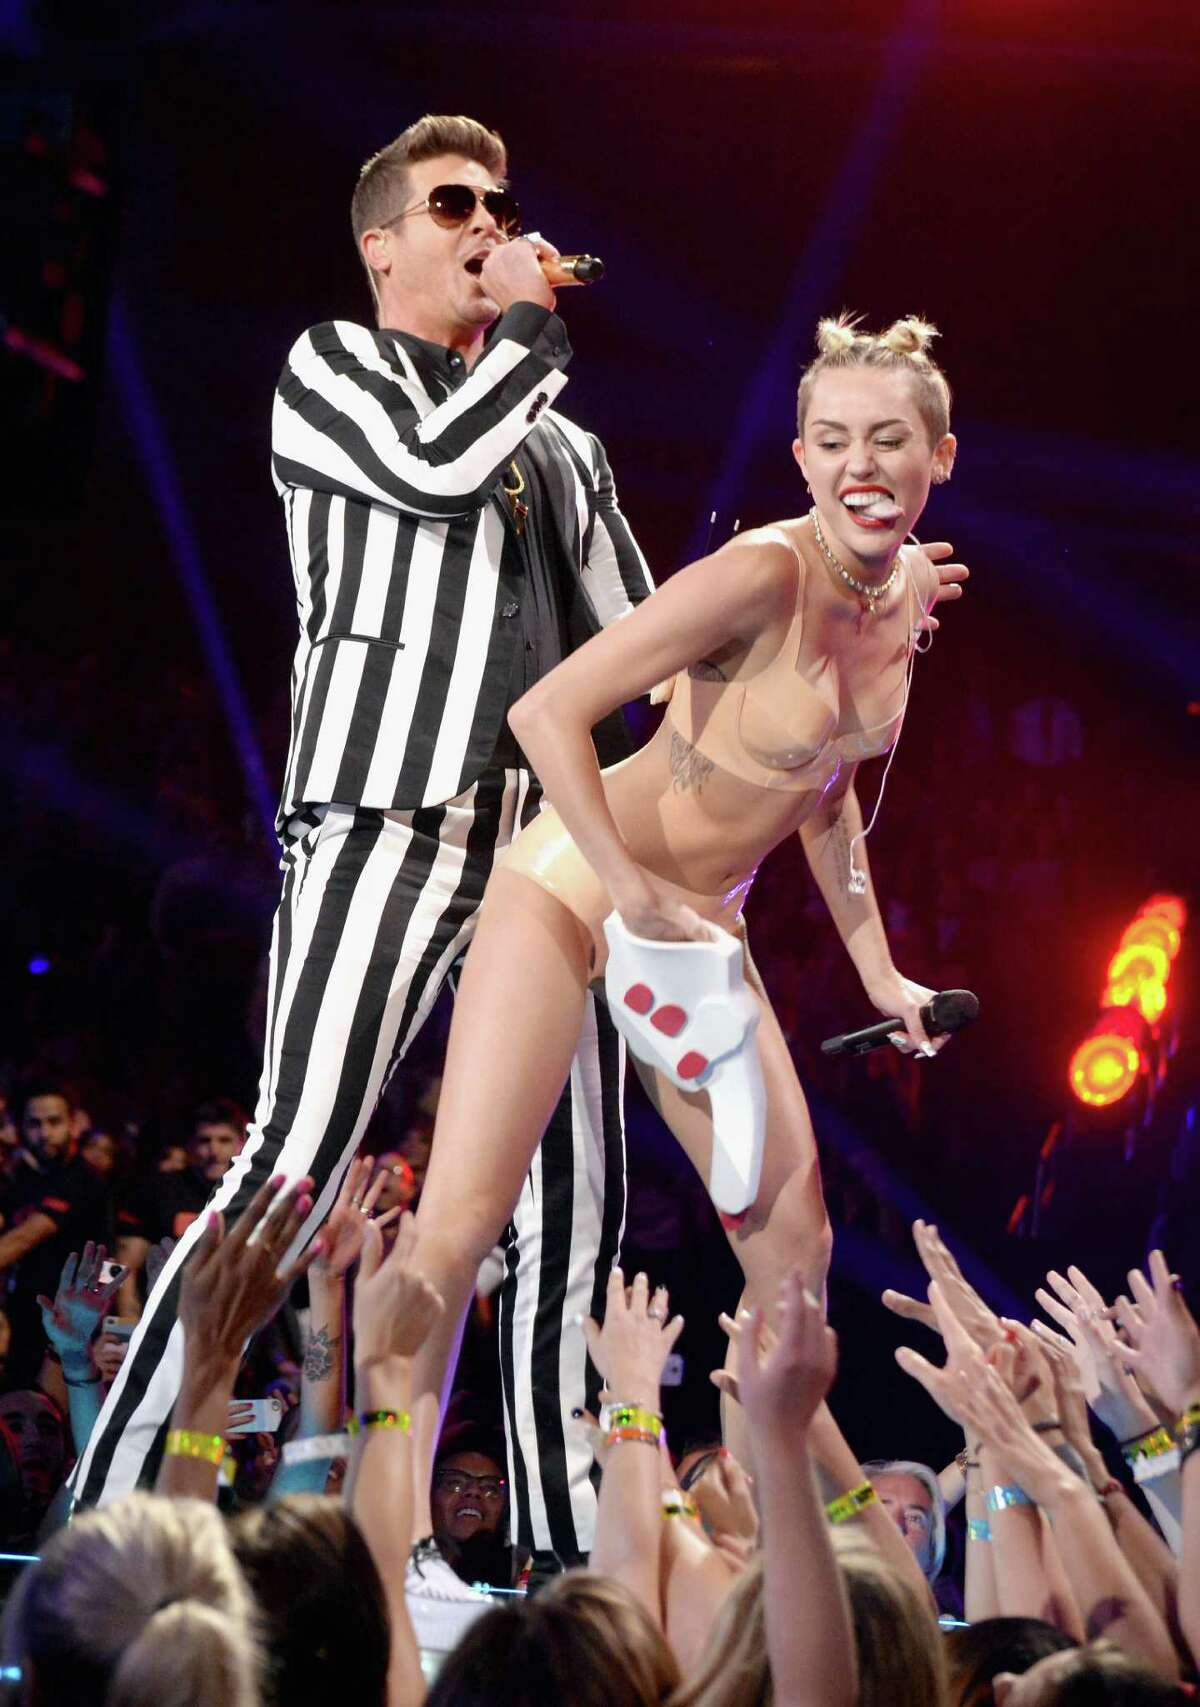 Had we any doubts about where her career was heading, Miley Cyrus removed them at the 2013 MTV Video Music Awards. But then twerking with Robin Thicke will do that for you. And you historians out there, this took place at the Barclays Center on Aug. 25, 2013 in Brooklyn